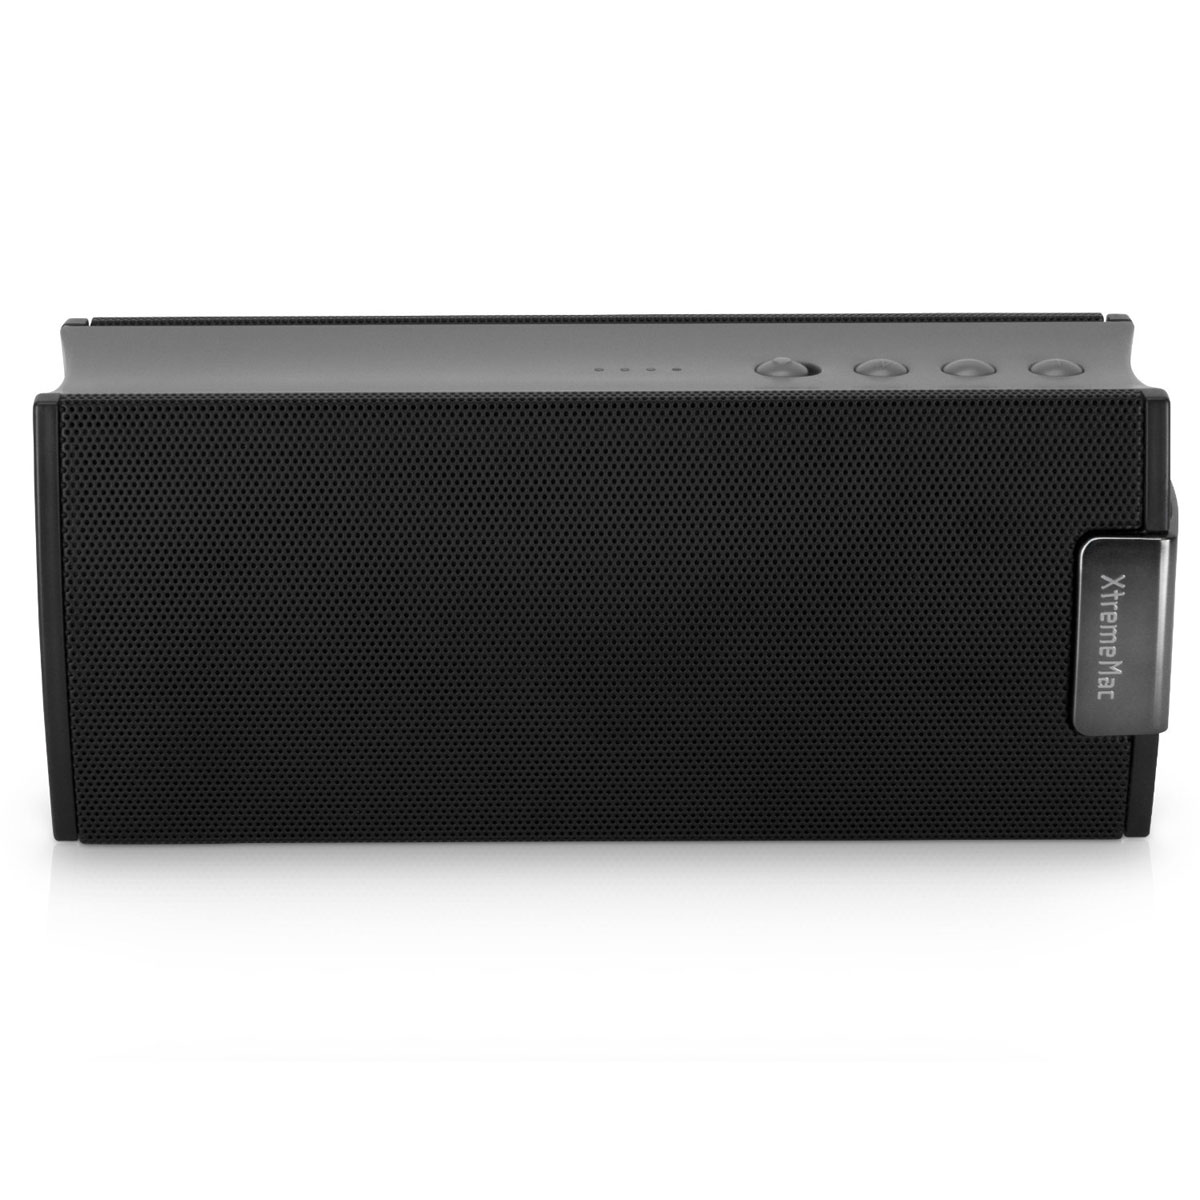 Xtrememac soma bt dock enceinte bluetooth xtrememac sur ldlc - Enceinte iphone ipad ...